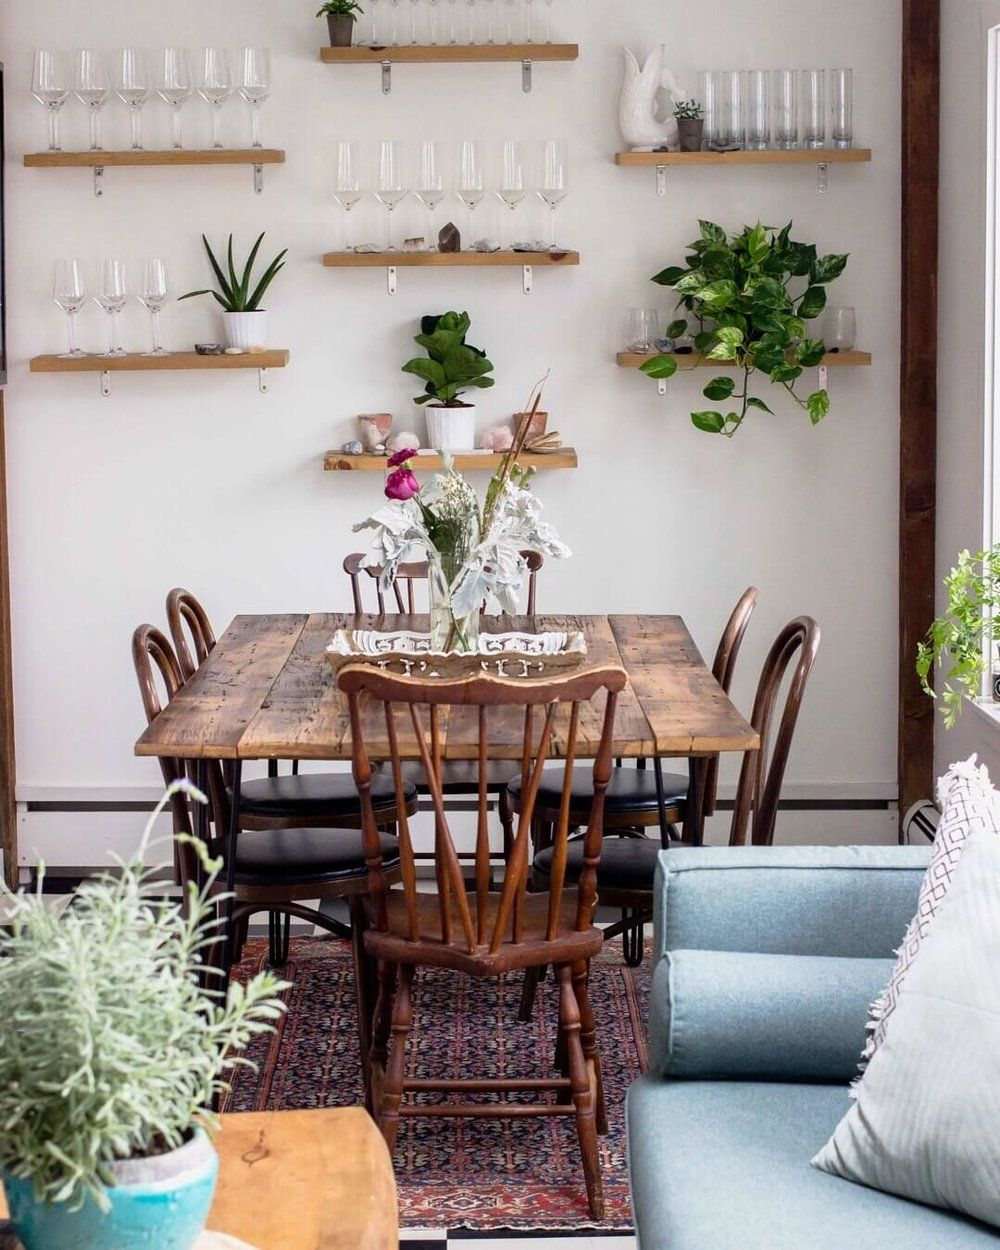 Why Quality Is Important For Sustainability Decor Essentials Home Decor Near Me Home Decor Shops